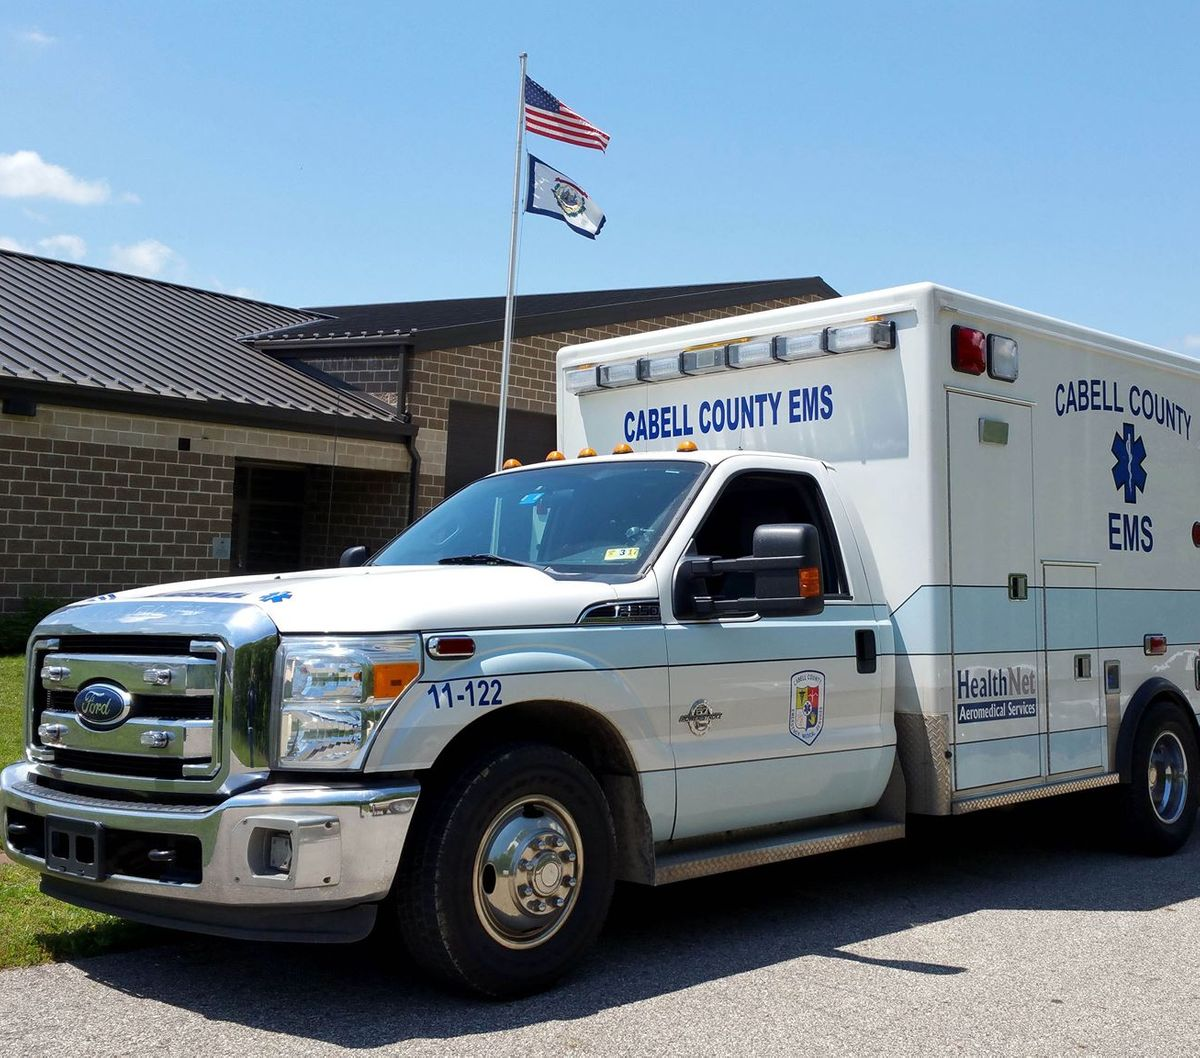 County On va Resolution To Ems Deny W Voting Recognition Union